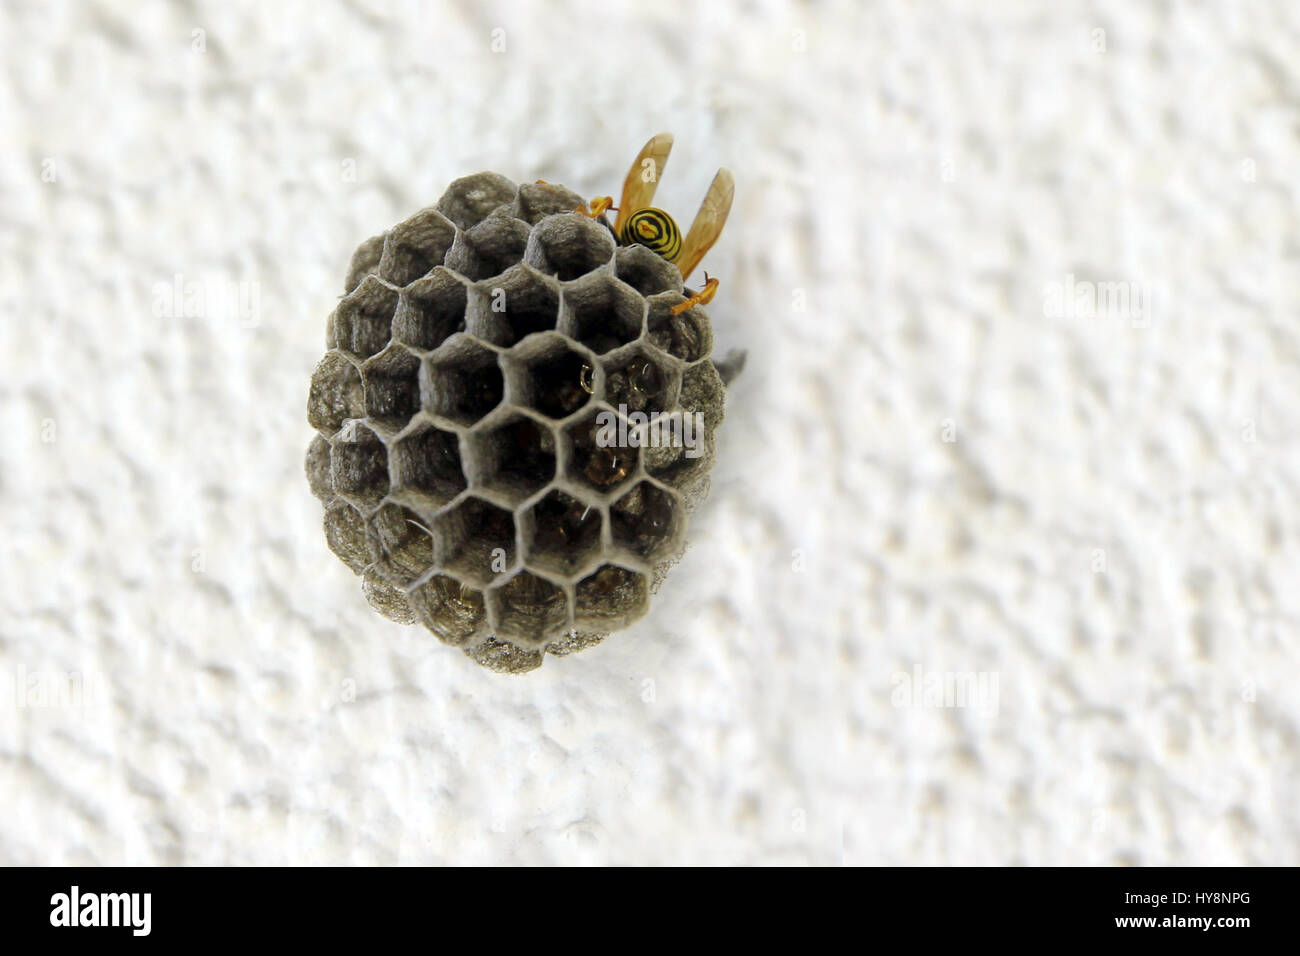 Comb Wasp Nest Stock Photos & Comb Wasp Nest Stock Images - Page 3 ...